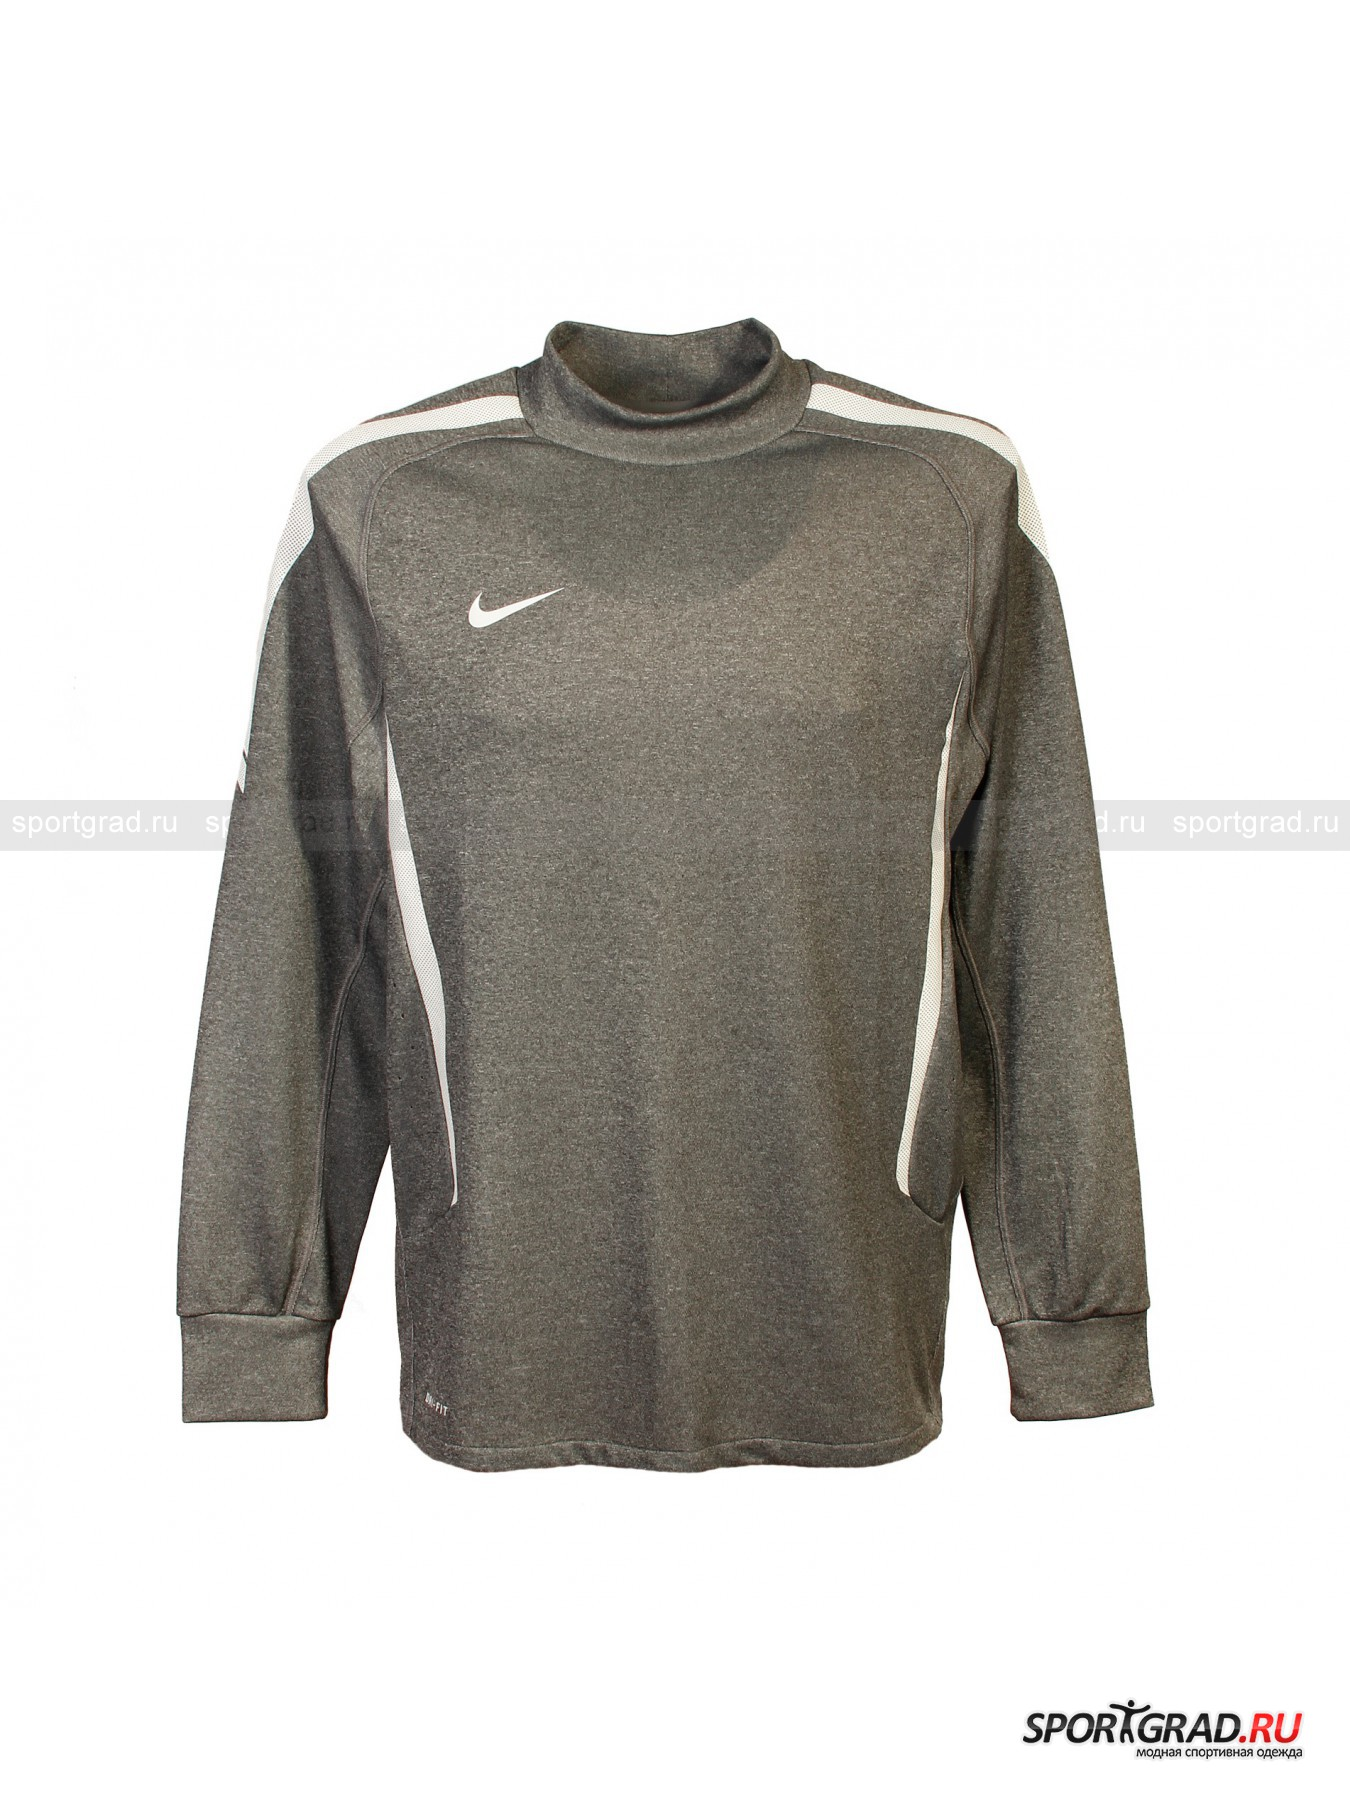 Свитер мужской ELITE ULTIMATE LS MIDLAYER TOP NIKE